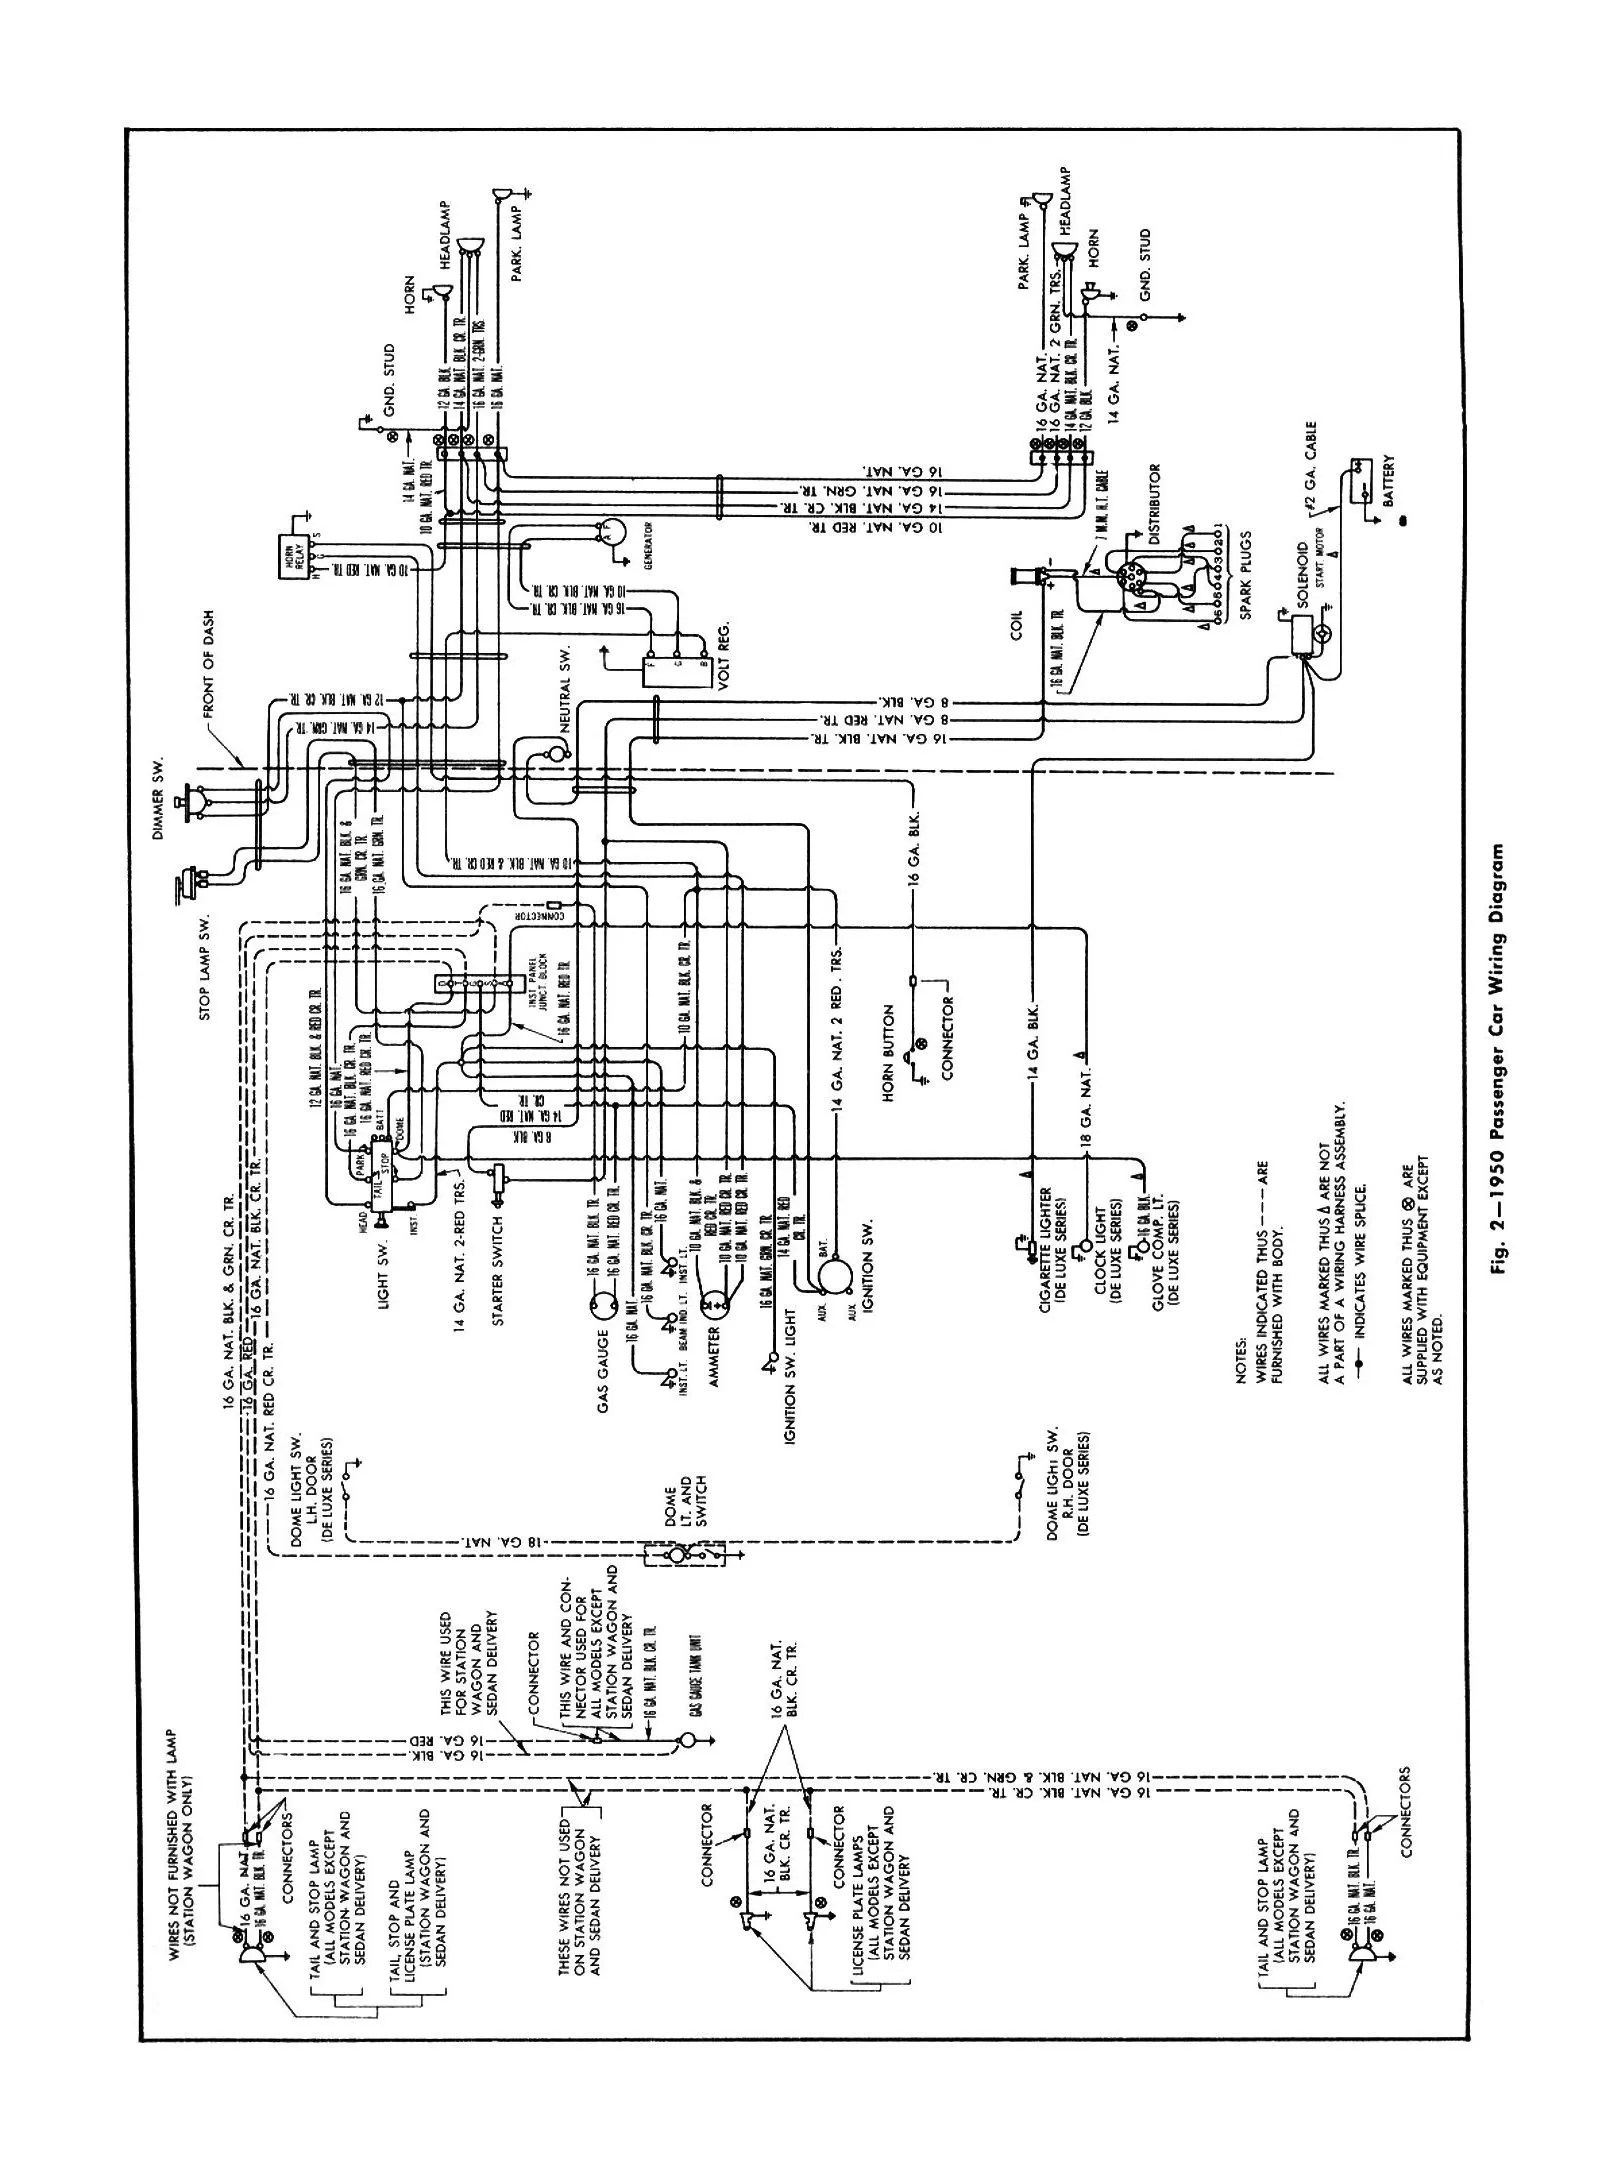 hight resolution of 1952 plymouth wiring harness electrical wiring diagram wiring diagram 1953 plymouth